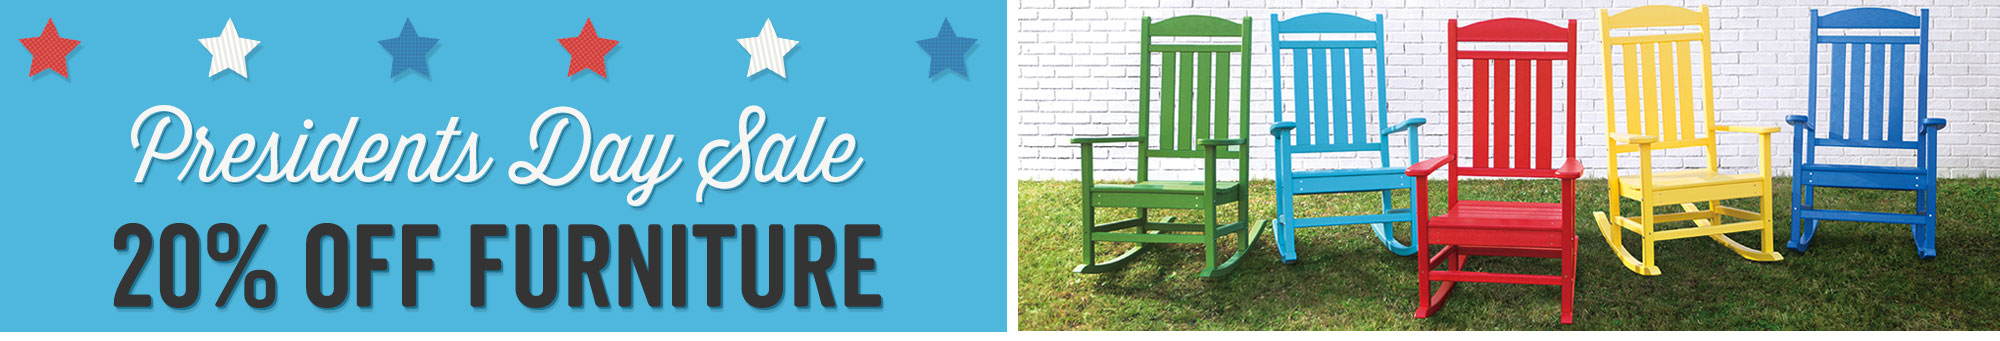 Presidents Day Sale - 20% Off Furniture